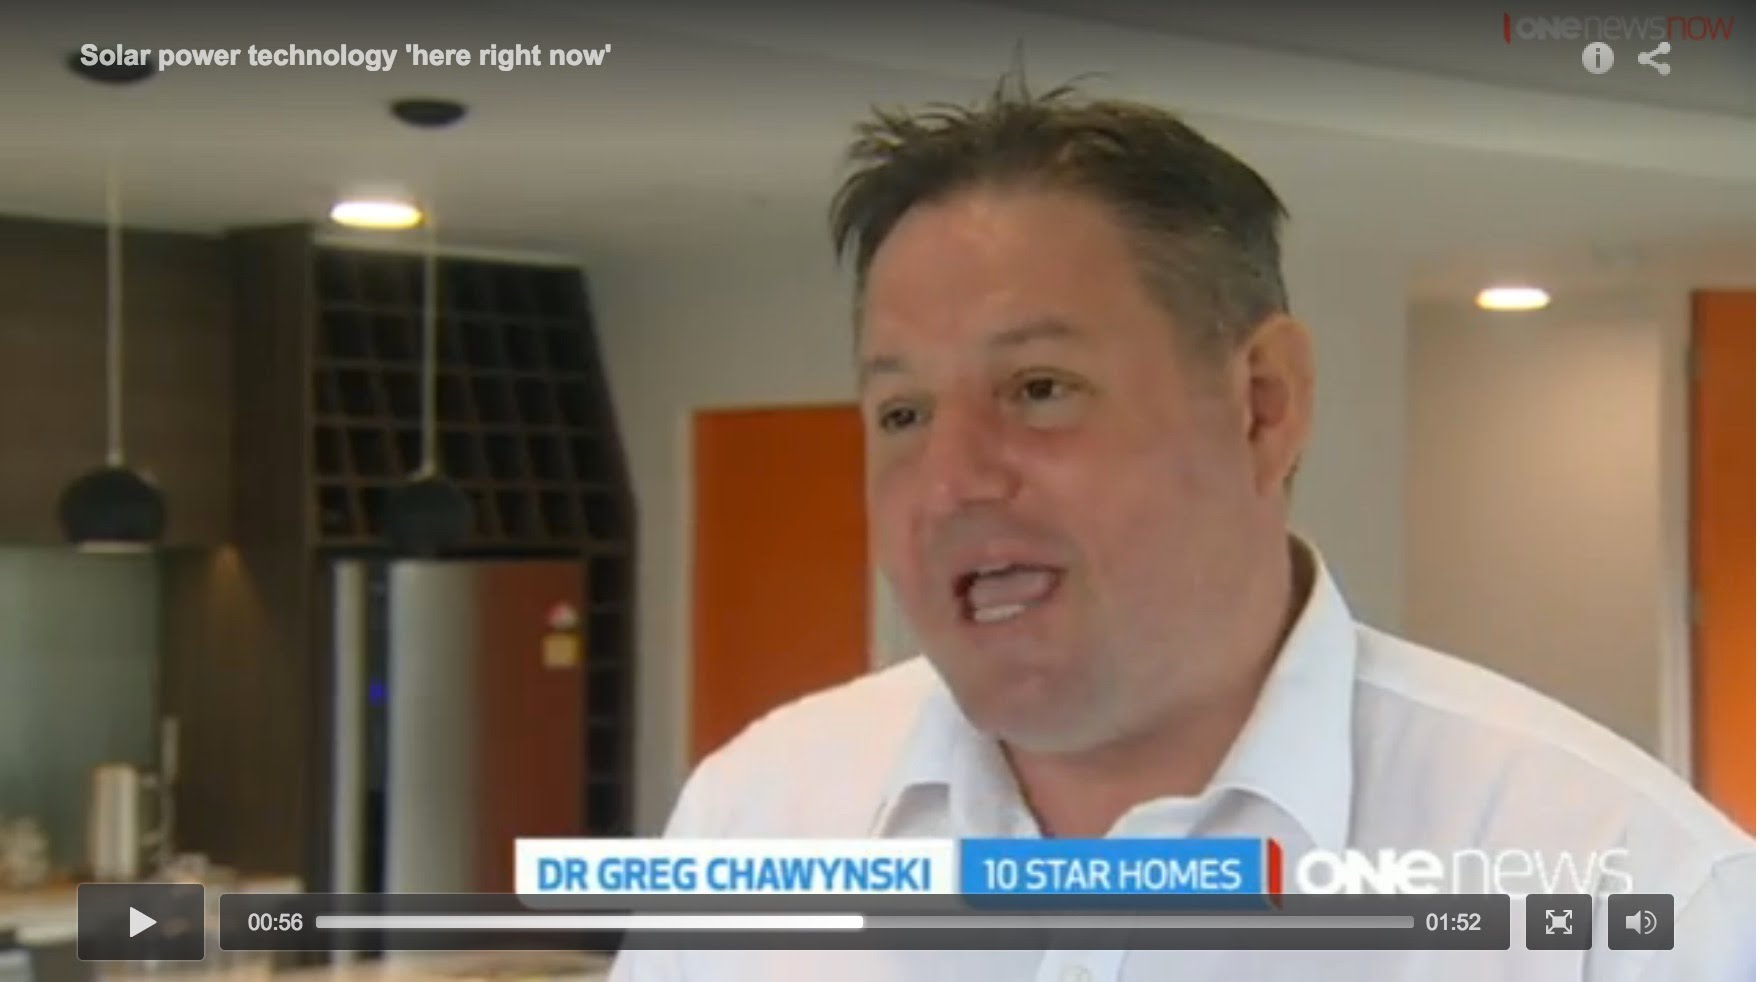 https://www.tvnz.co.nz/one-news/new-zealand/solar-power-technology-here-right-now